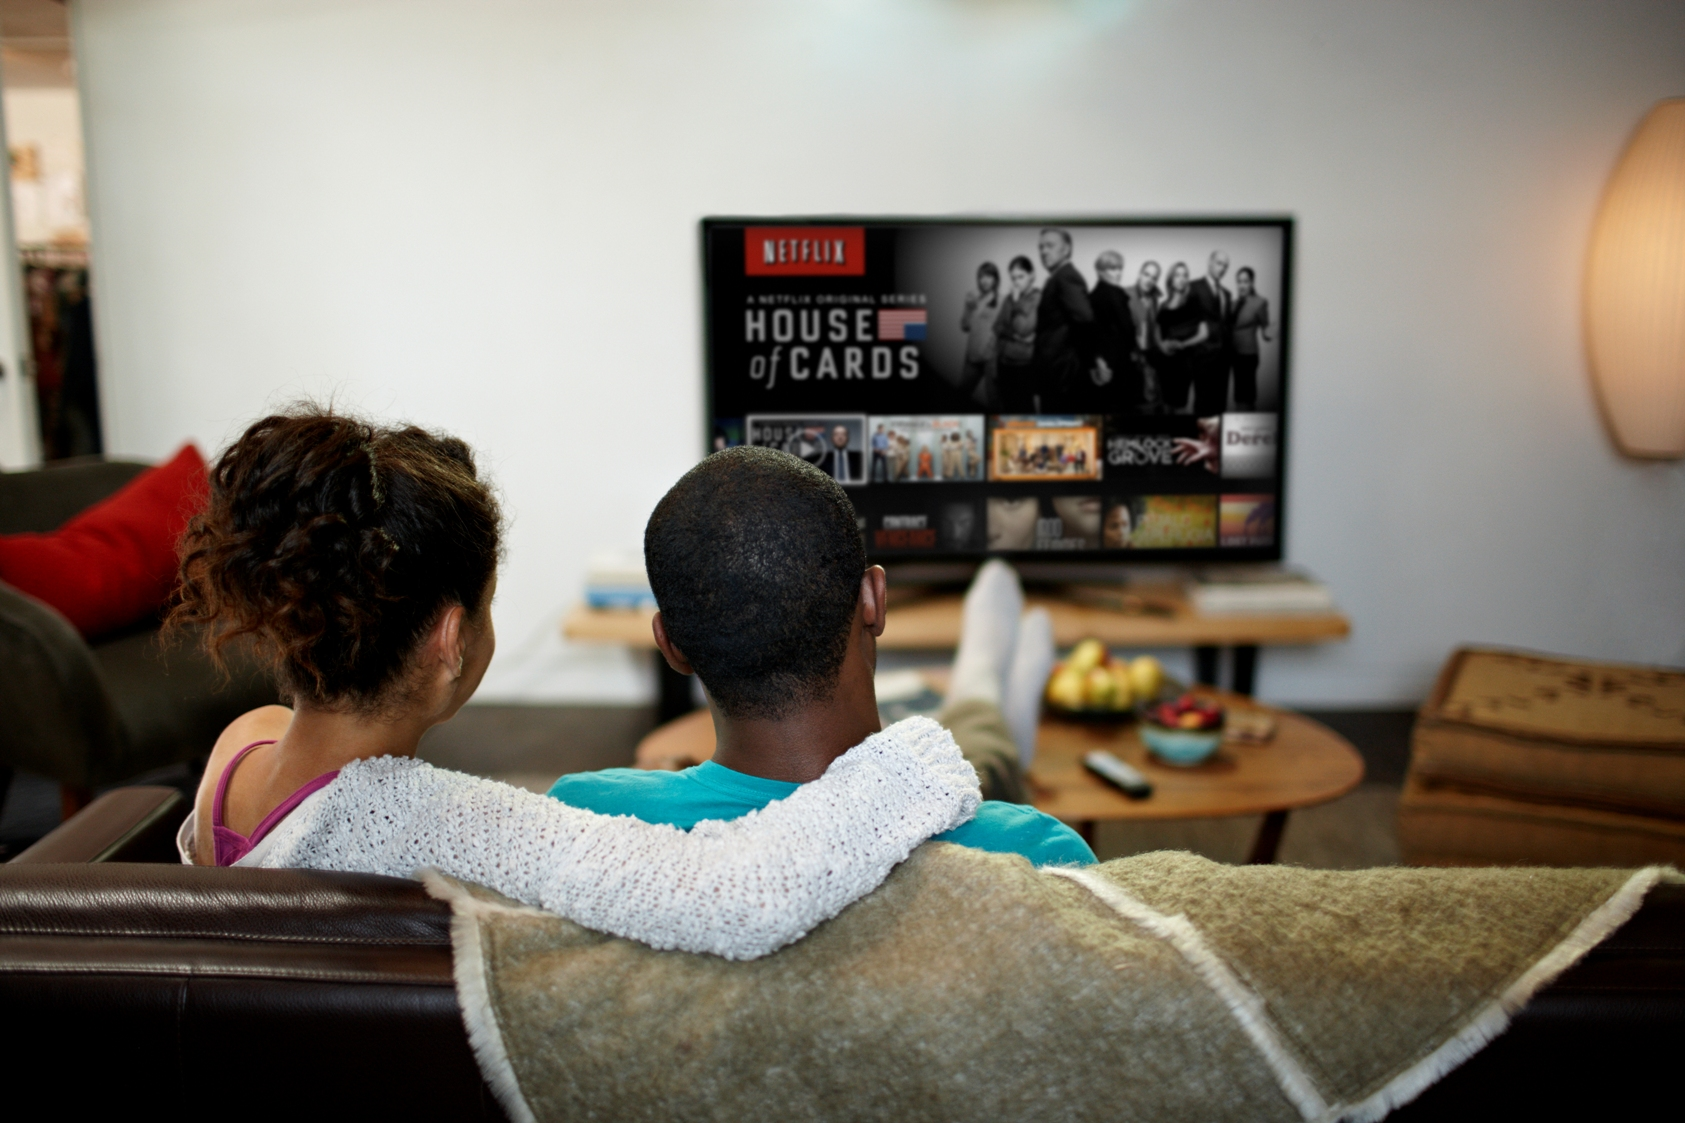 Copied from StreamDaily - netflixlivingroom